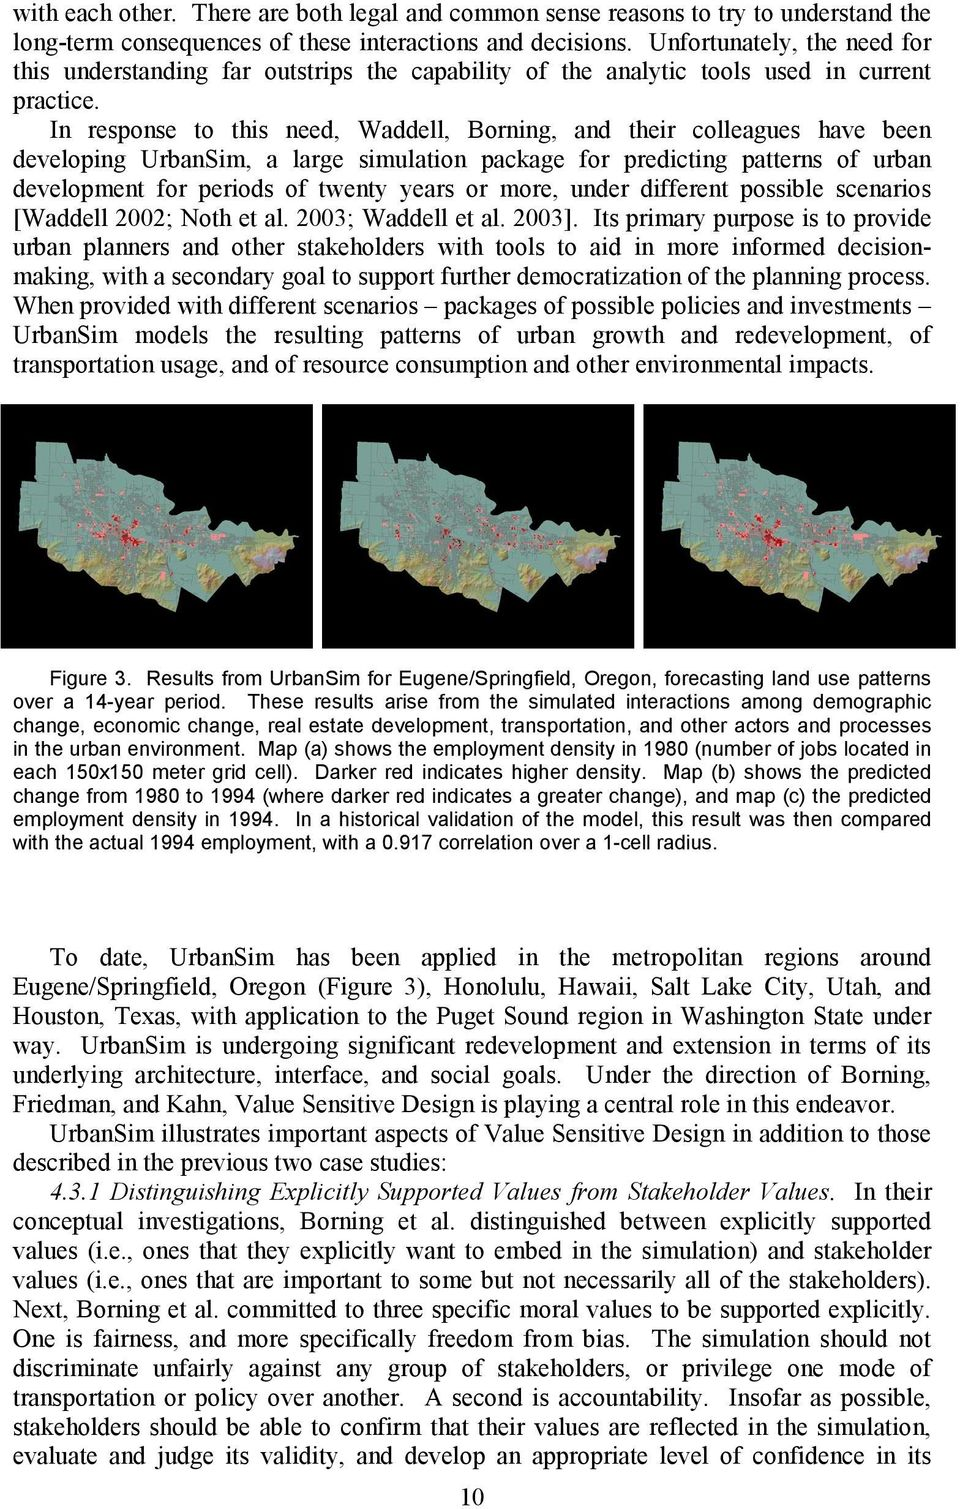 In response to this need, Waddell, Borning, and their colleagues have been developing UrbanSim, a large simulation package for predicting patterns of urban development for periods of twenty years or